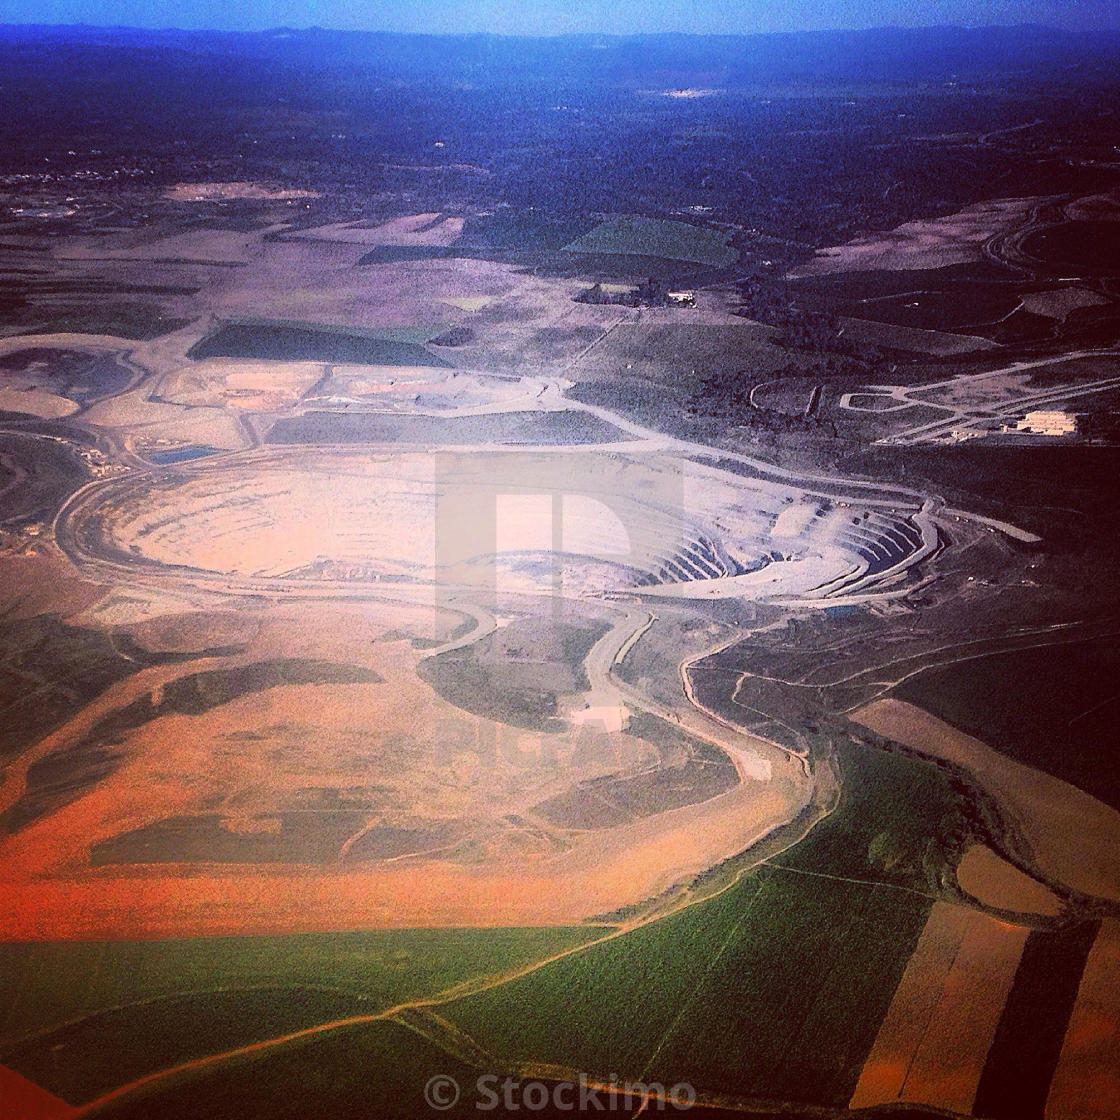 """""""Open-pit mine near Seville, Andalusia, Spain"""" stock image"""